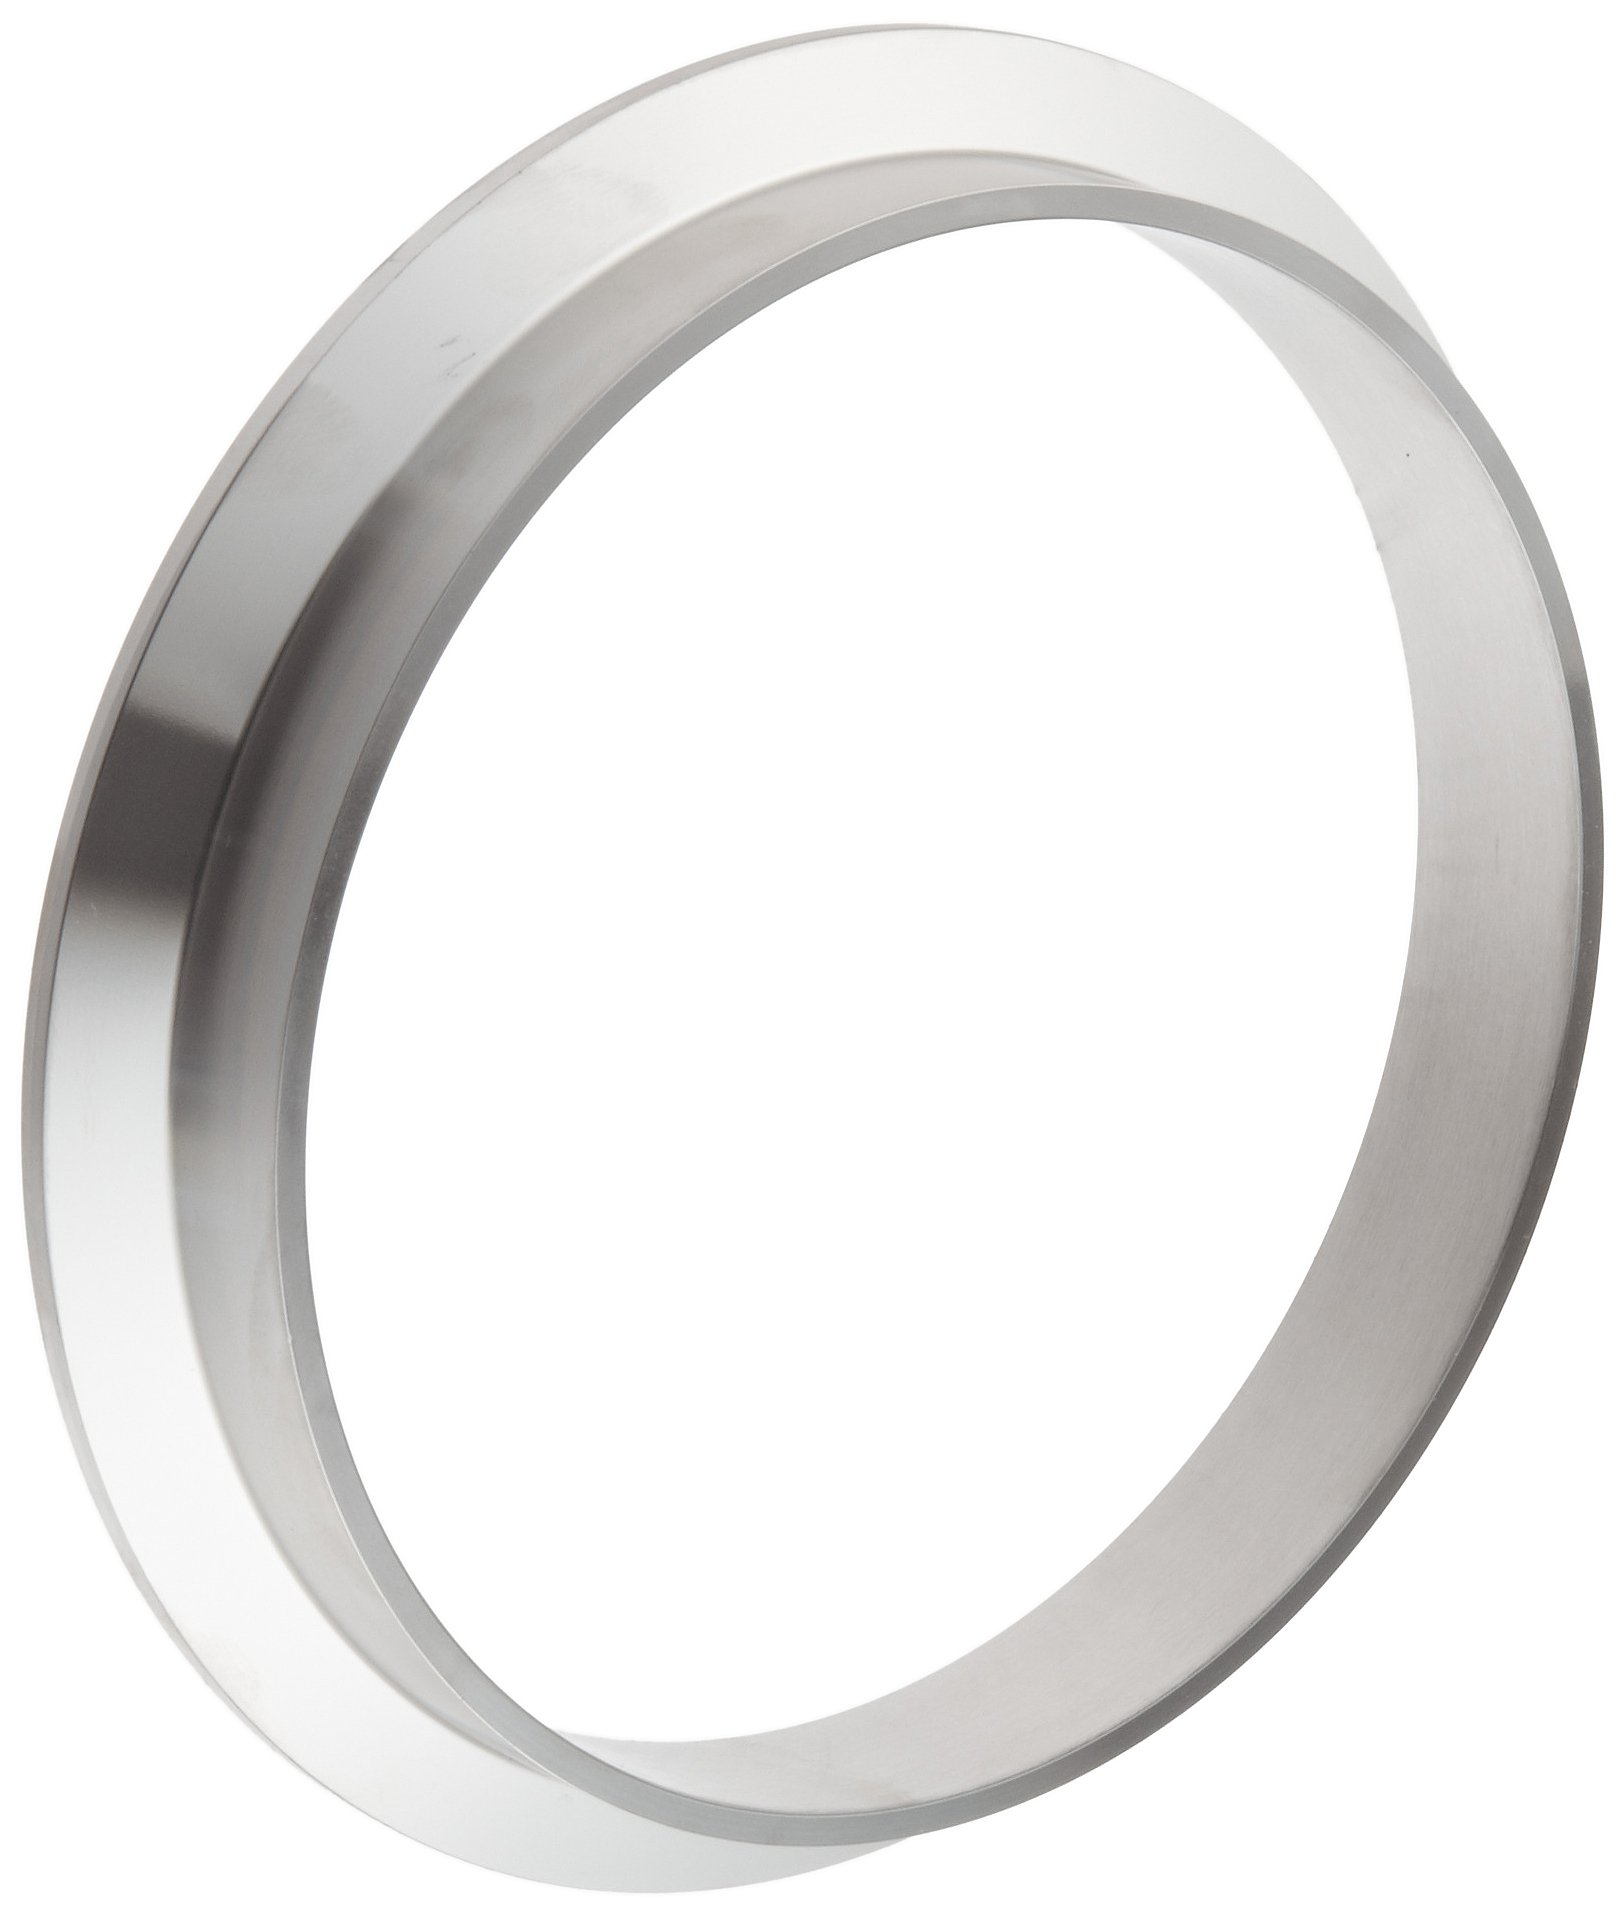 Dixon 14WMP-G500 Stainless Steel 304 Sanitary Fitting, Short Weld Clamp Ferrule, 5'' Tube OD by Dixon Valve & Coupling